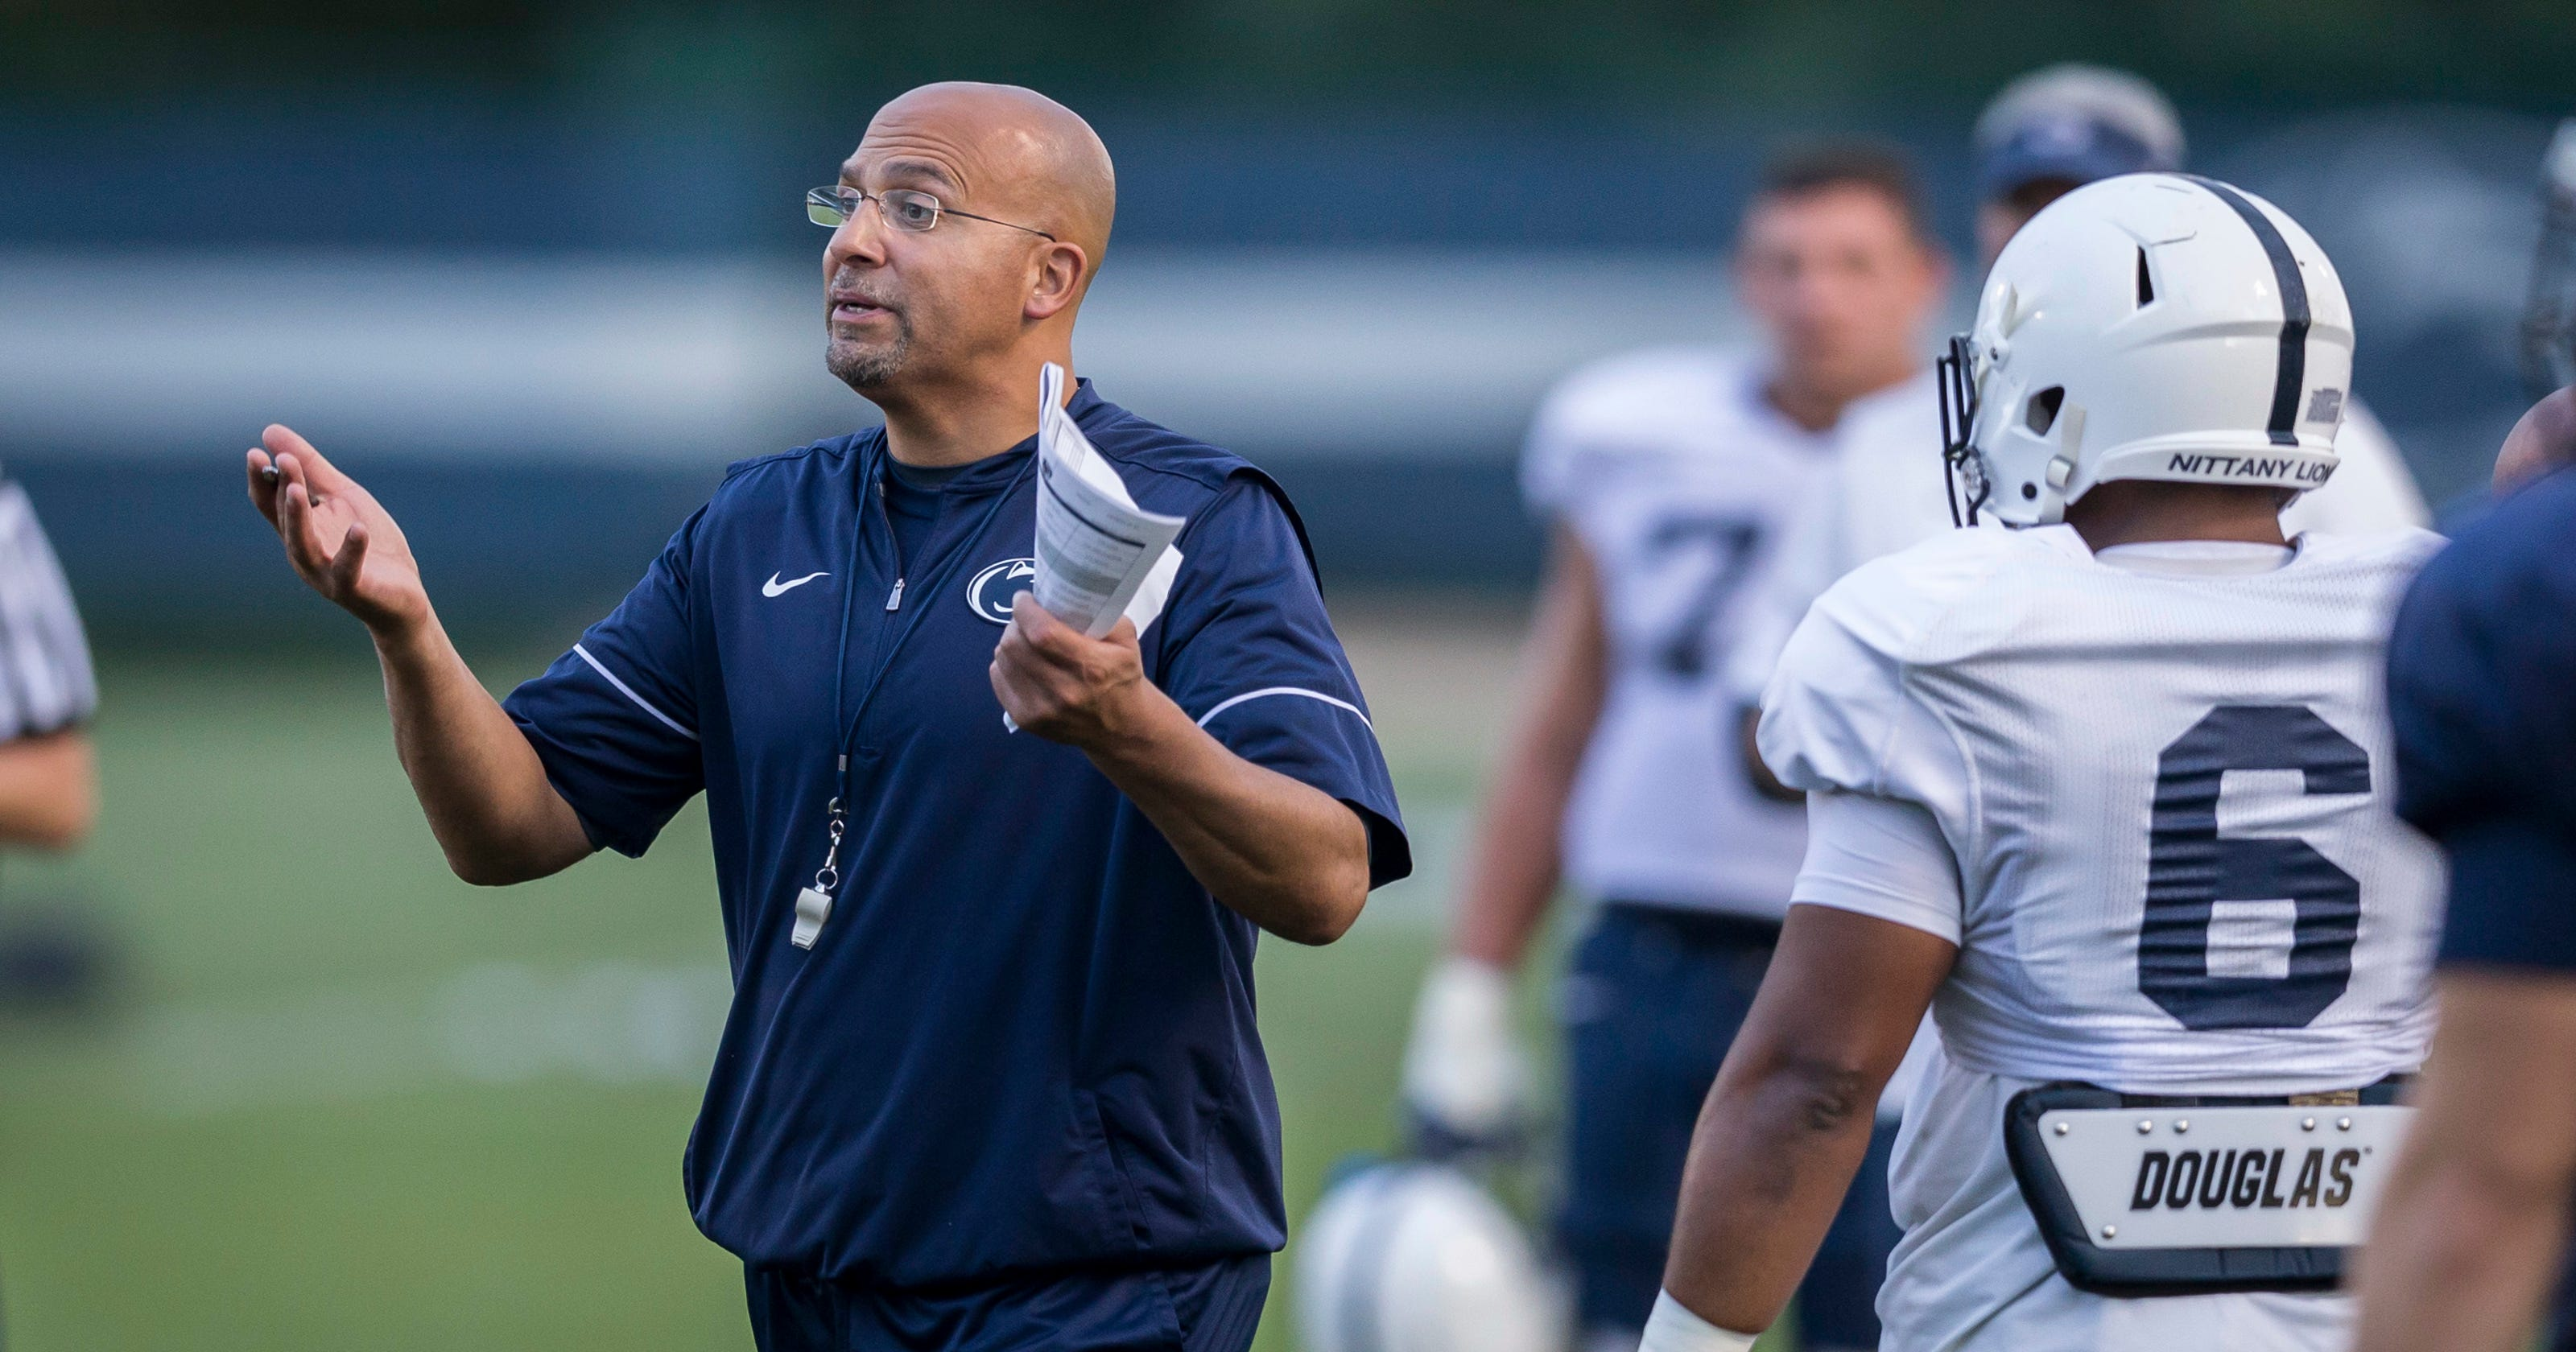 Penn State s James Franklin says Lions tickled pink about Iowa s visiting  locker room df4dff1e4